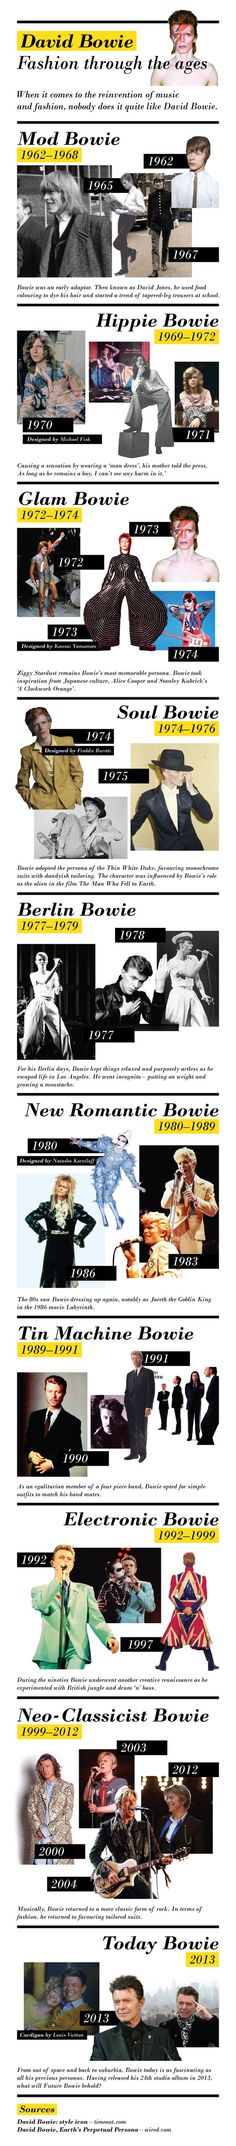 Fashion Icon | David Bowie Style Through the Decades: From Mod & Glam to Neo Classicist. Ally.....: